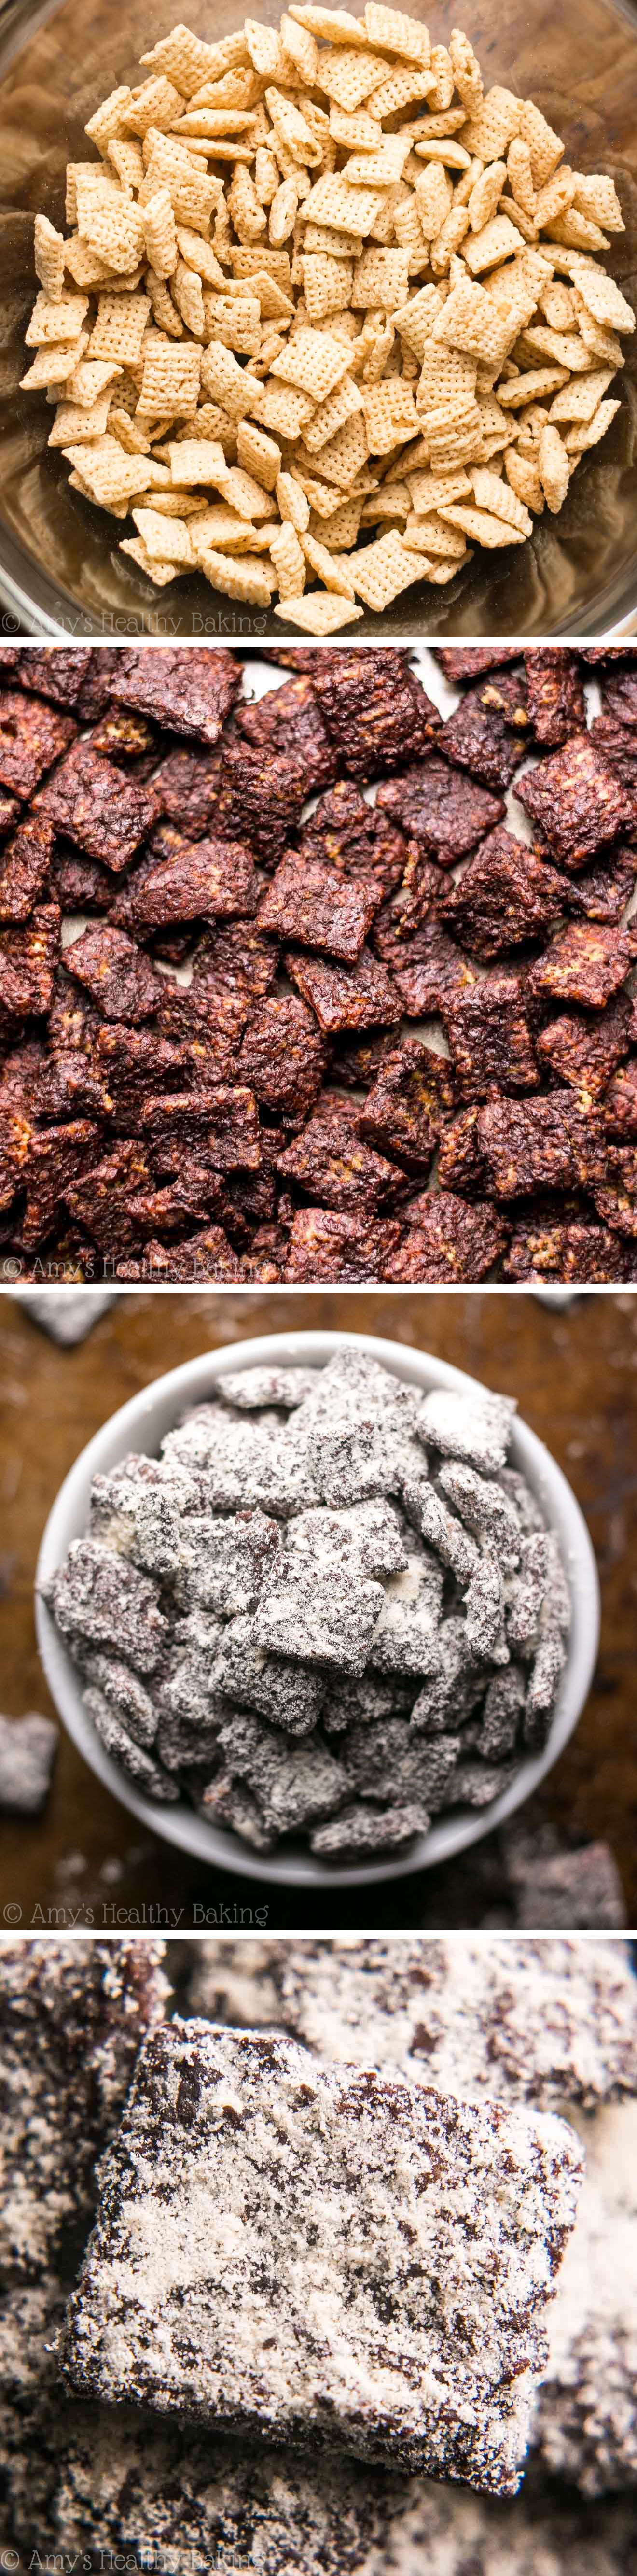 Sweet, crunchy & SO good!! This recipe for skinny puppy chow {muddy buddies} doesn't taste healthy at all! (With 6g+ of protein!)